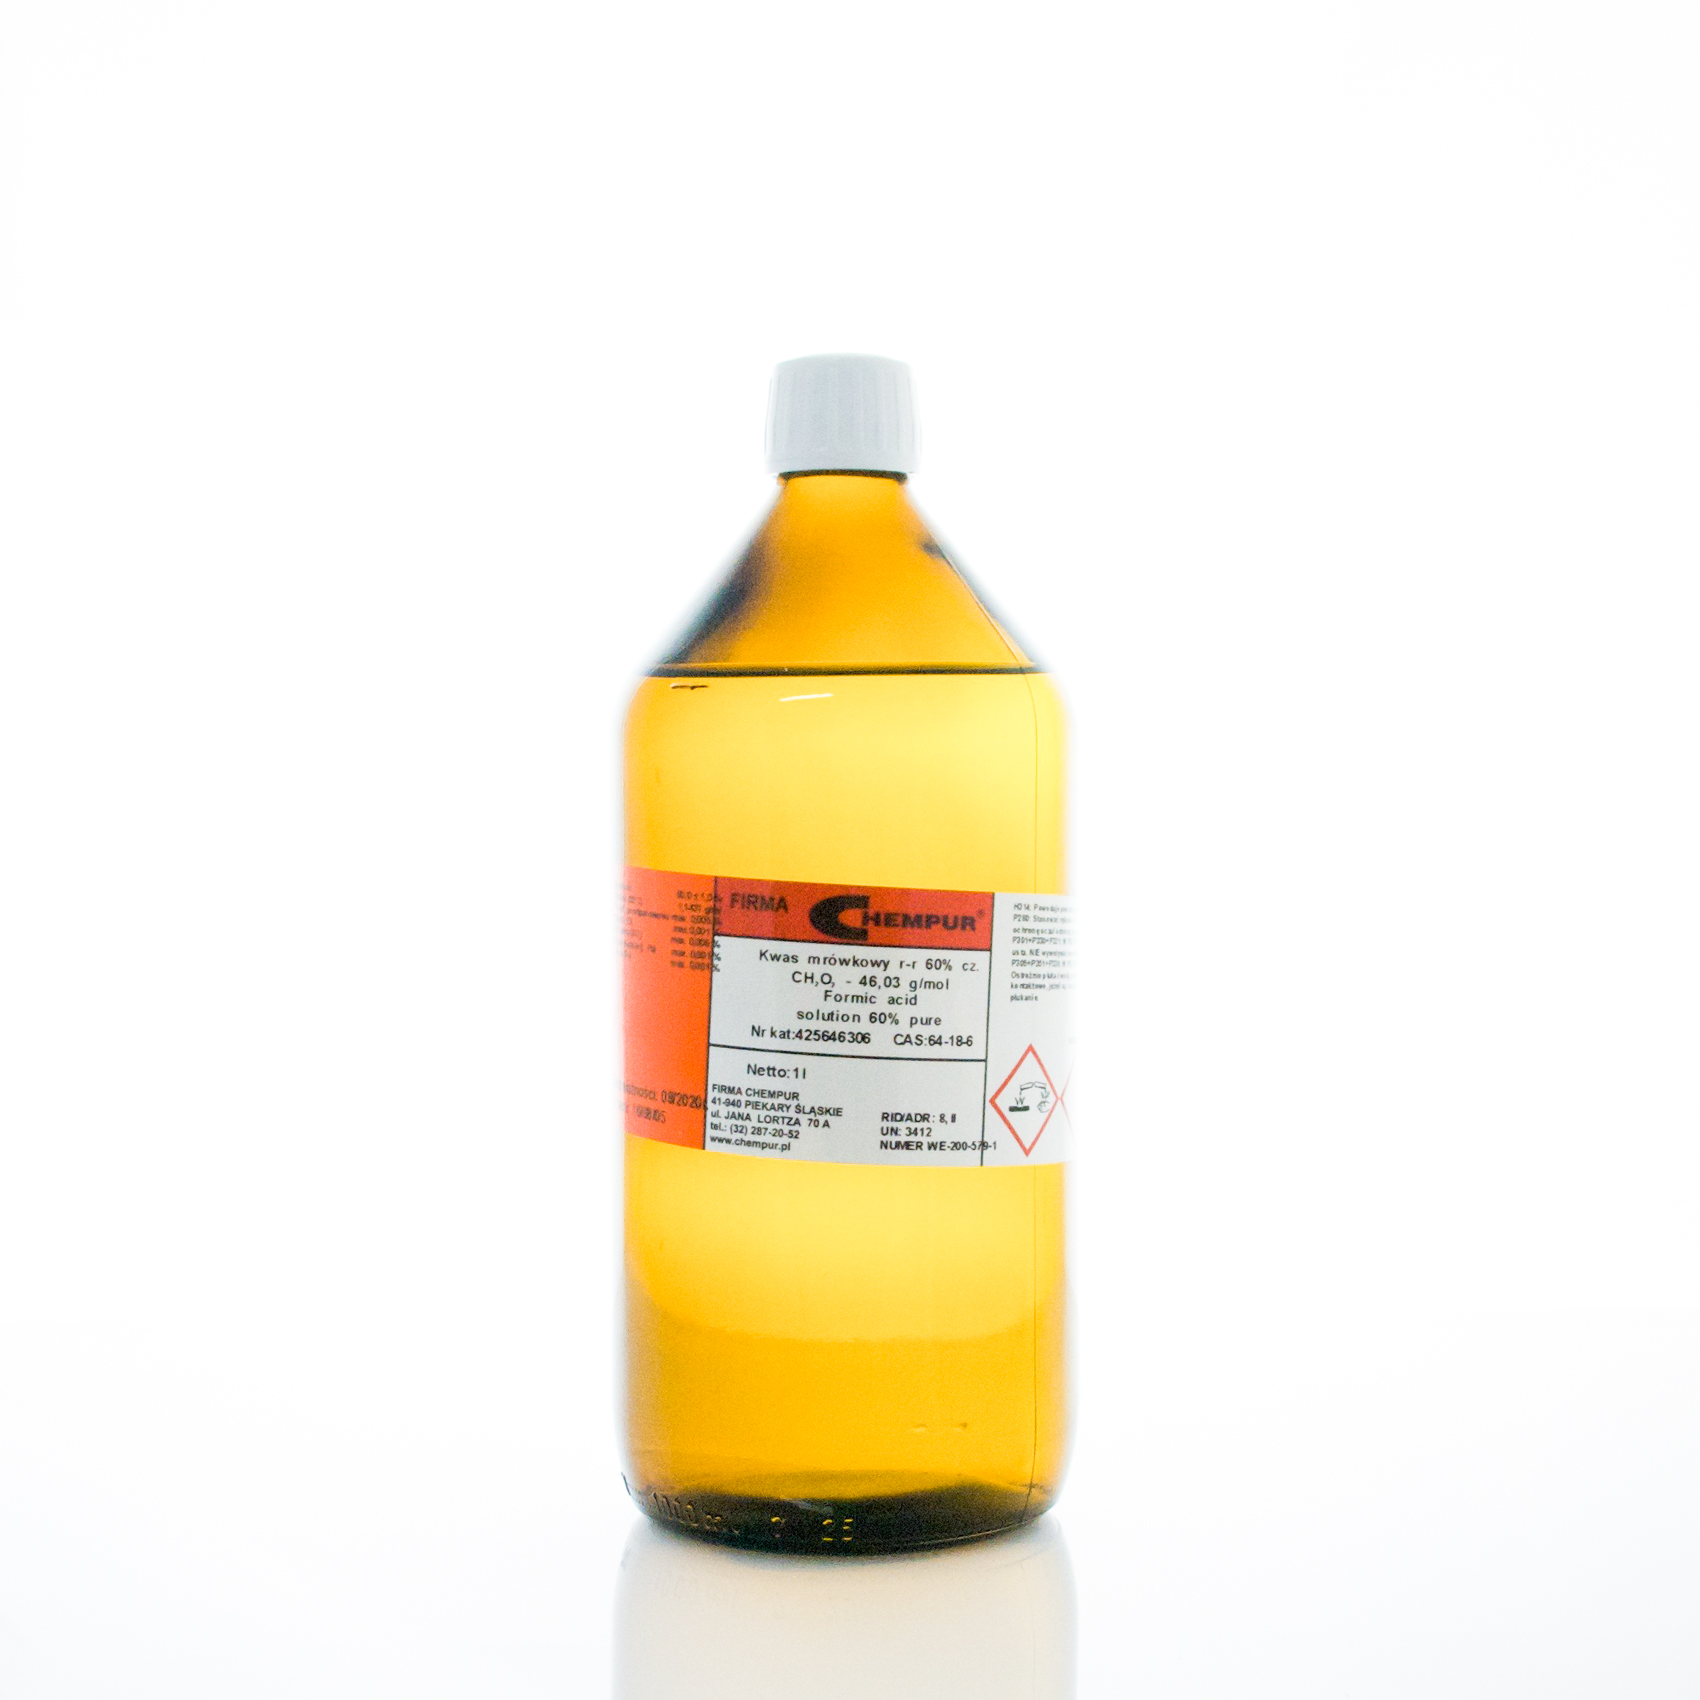 Formic acid solution 60% pure